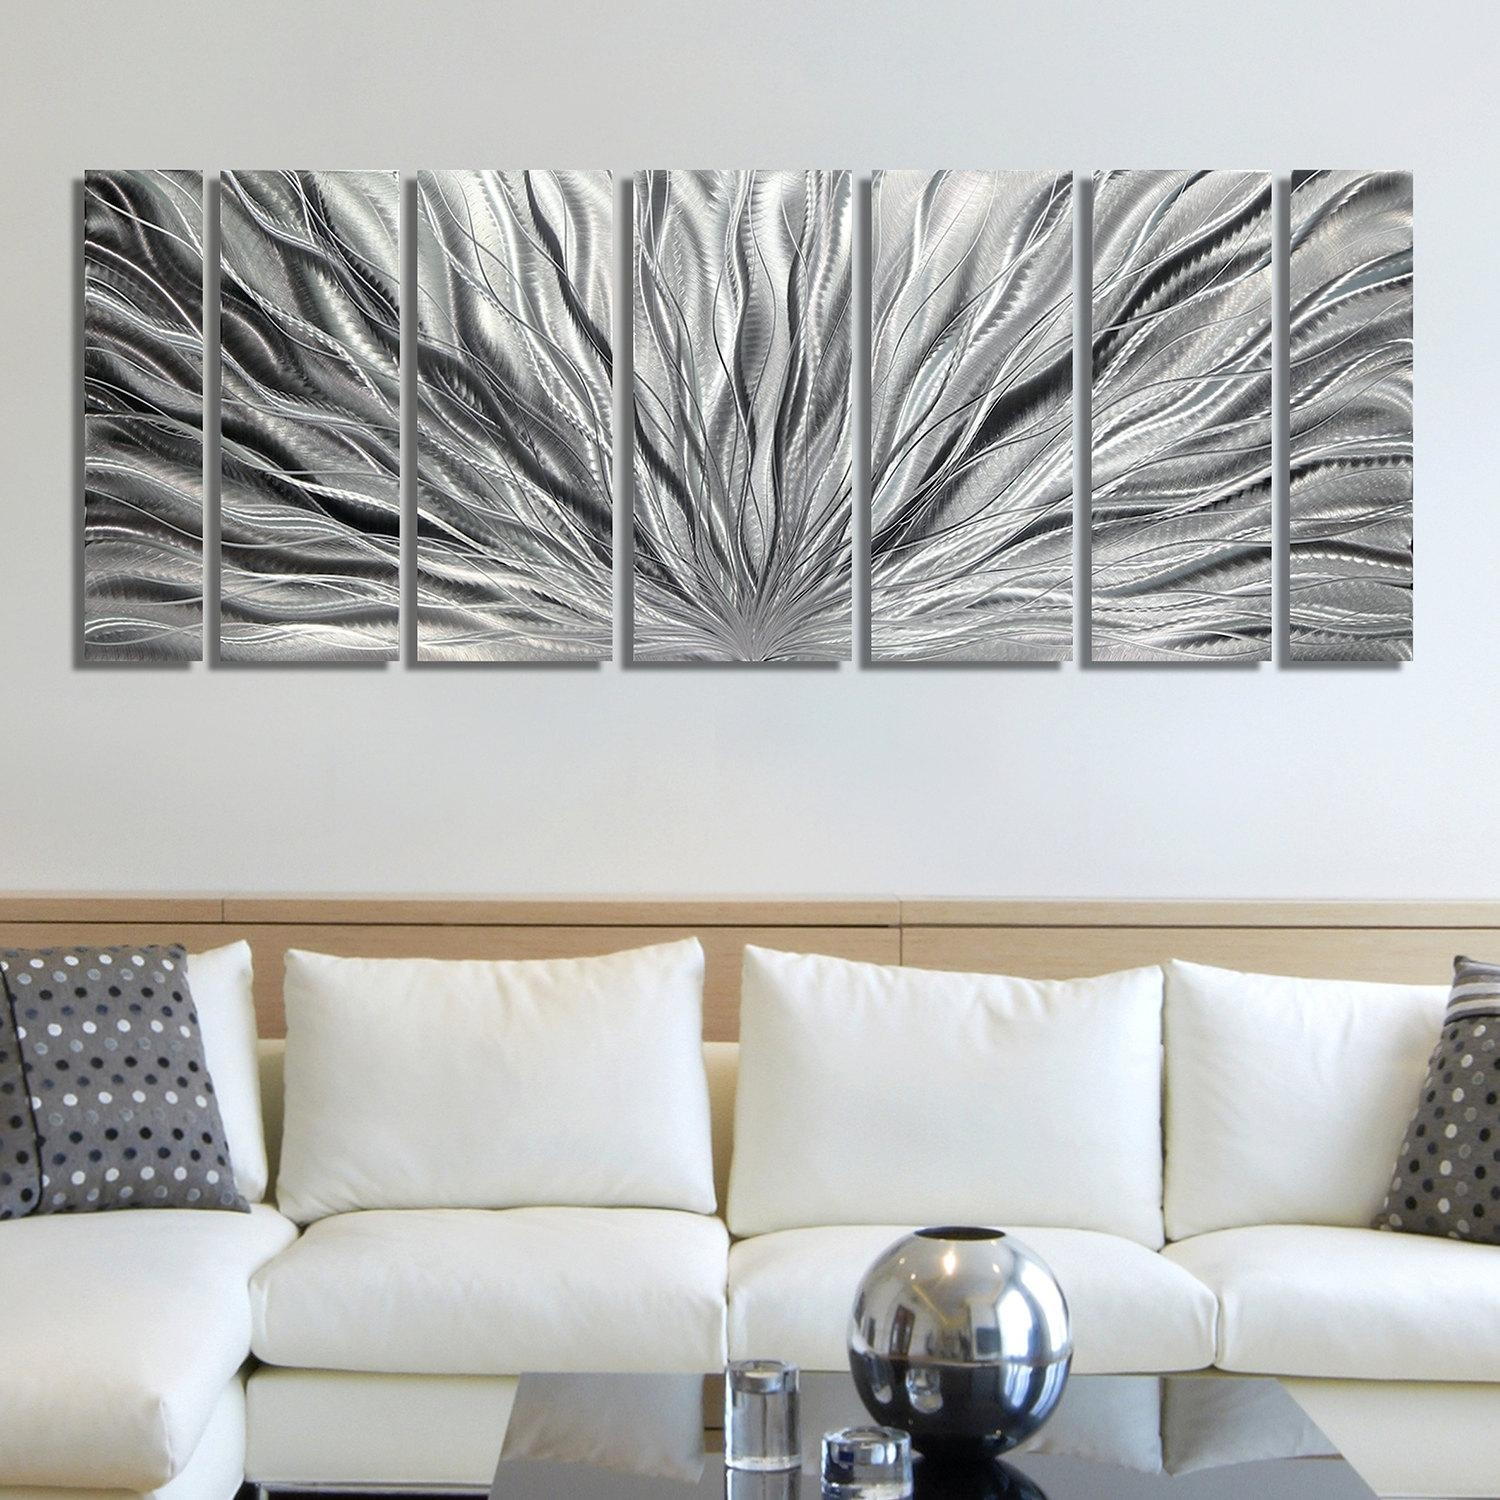 Sale Large Multi Panel Metal Wall Art In All Silver With Big Metal Wall Art (Image 11 of 20)